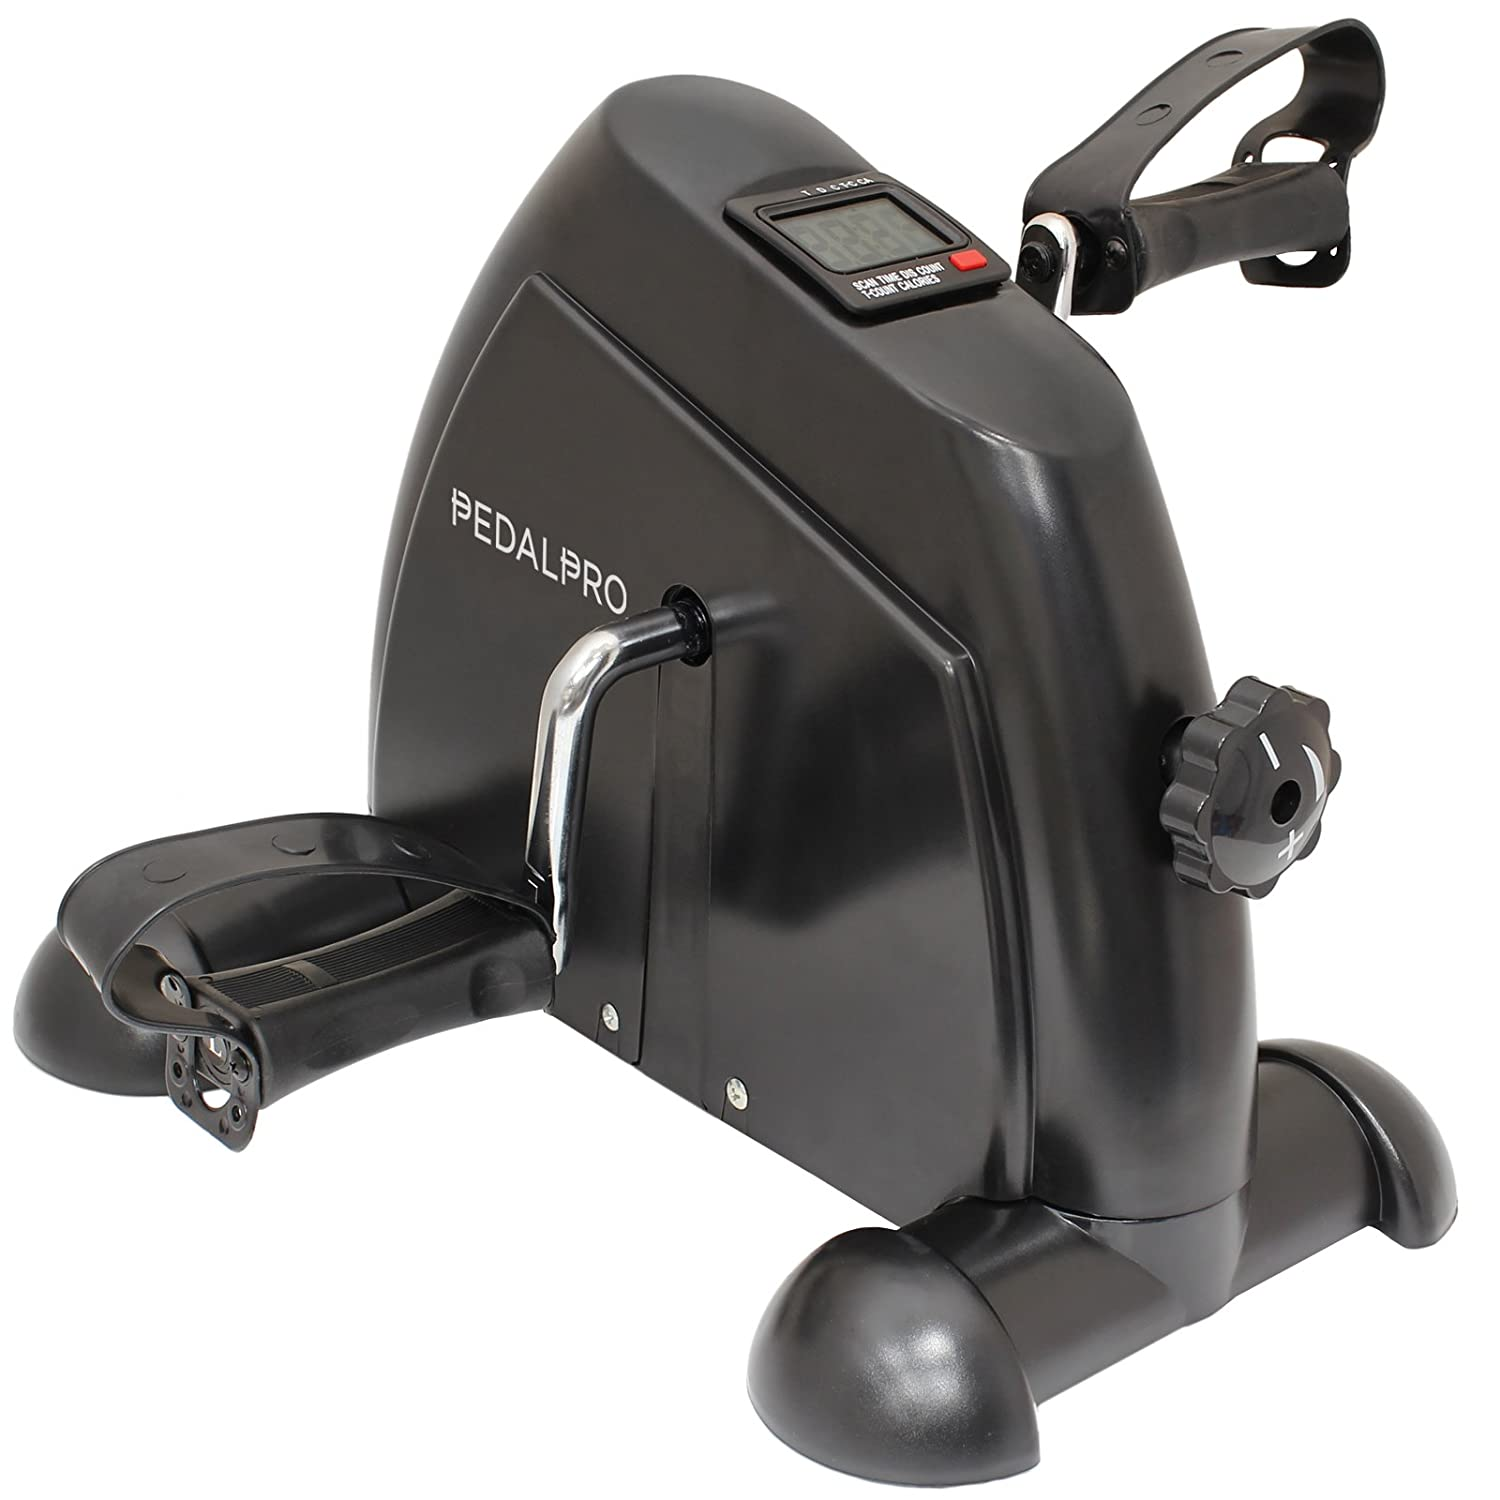 PedalPro Mini Exercise Bike with LCD Display - 2kg Flywheel